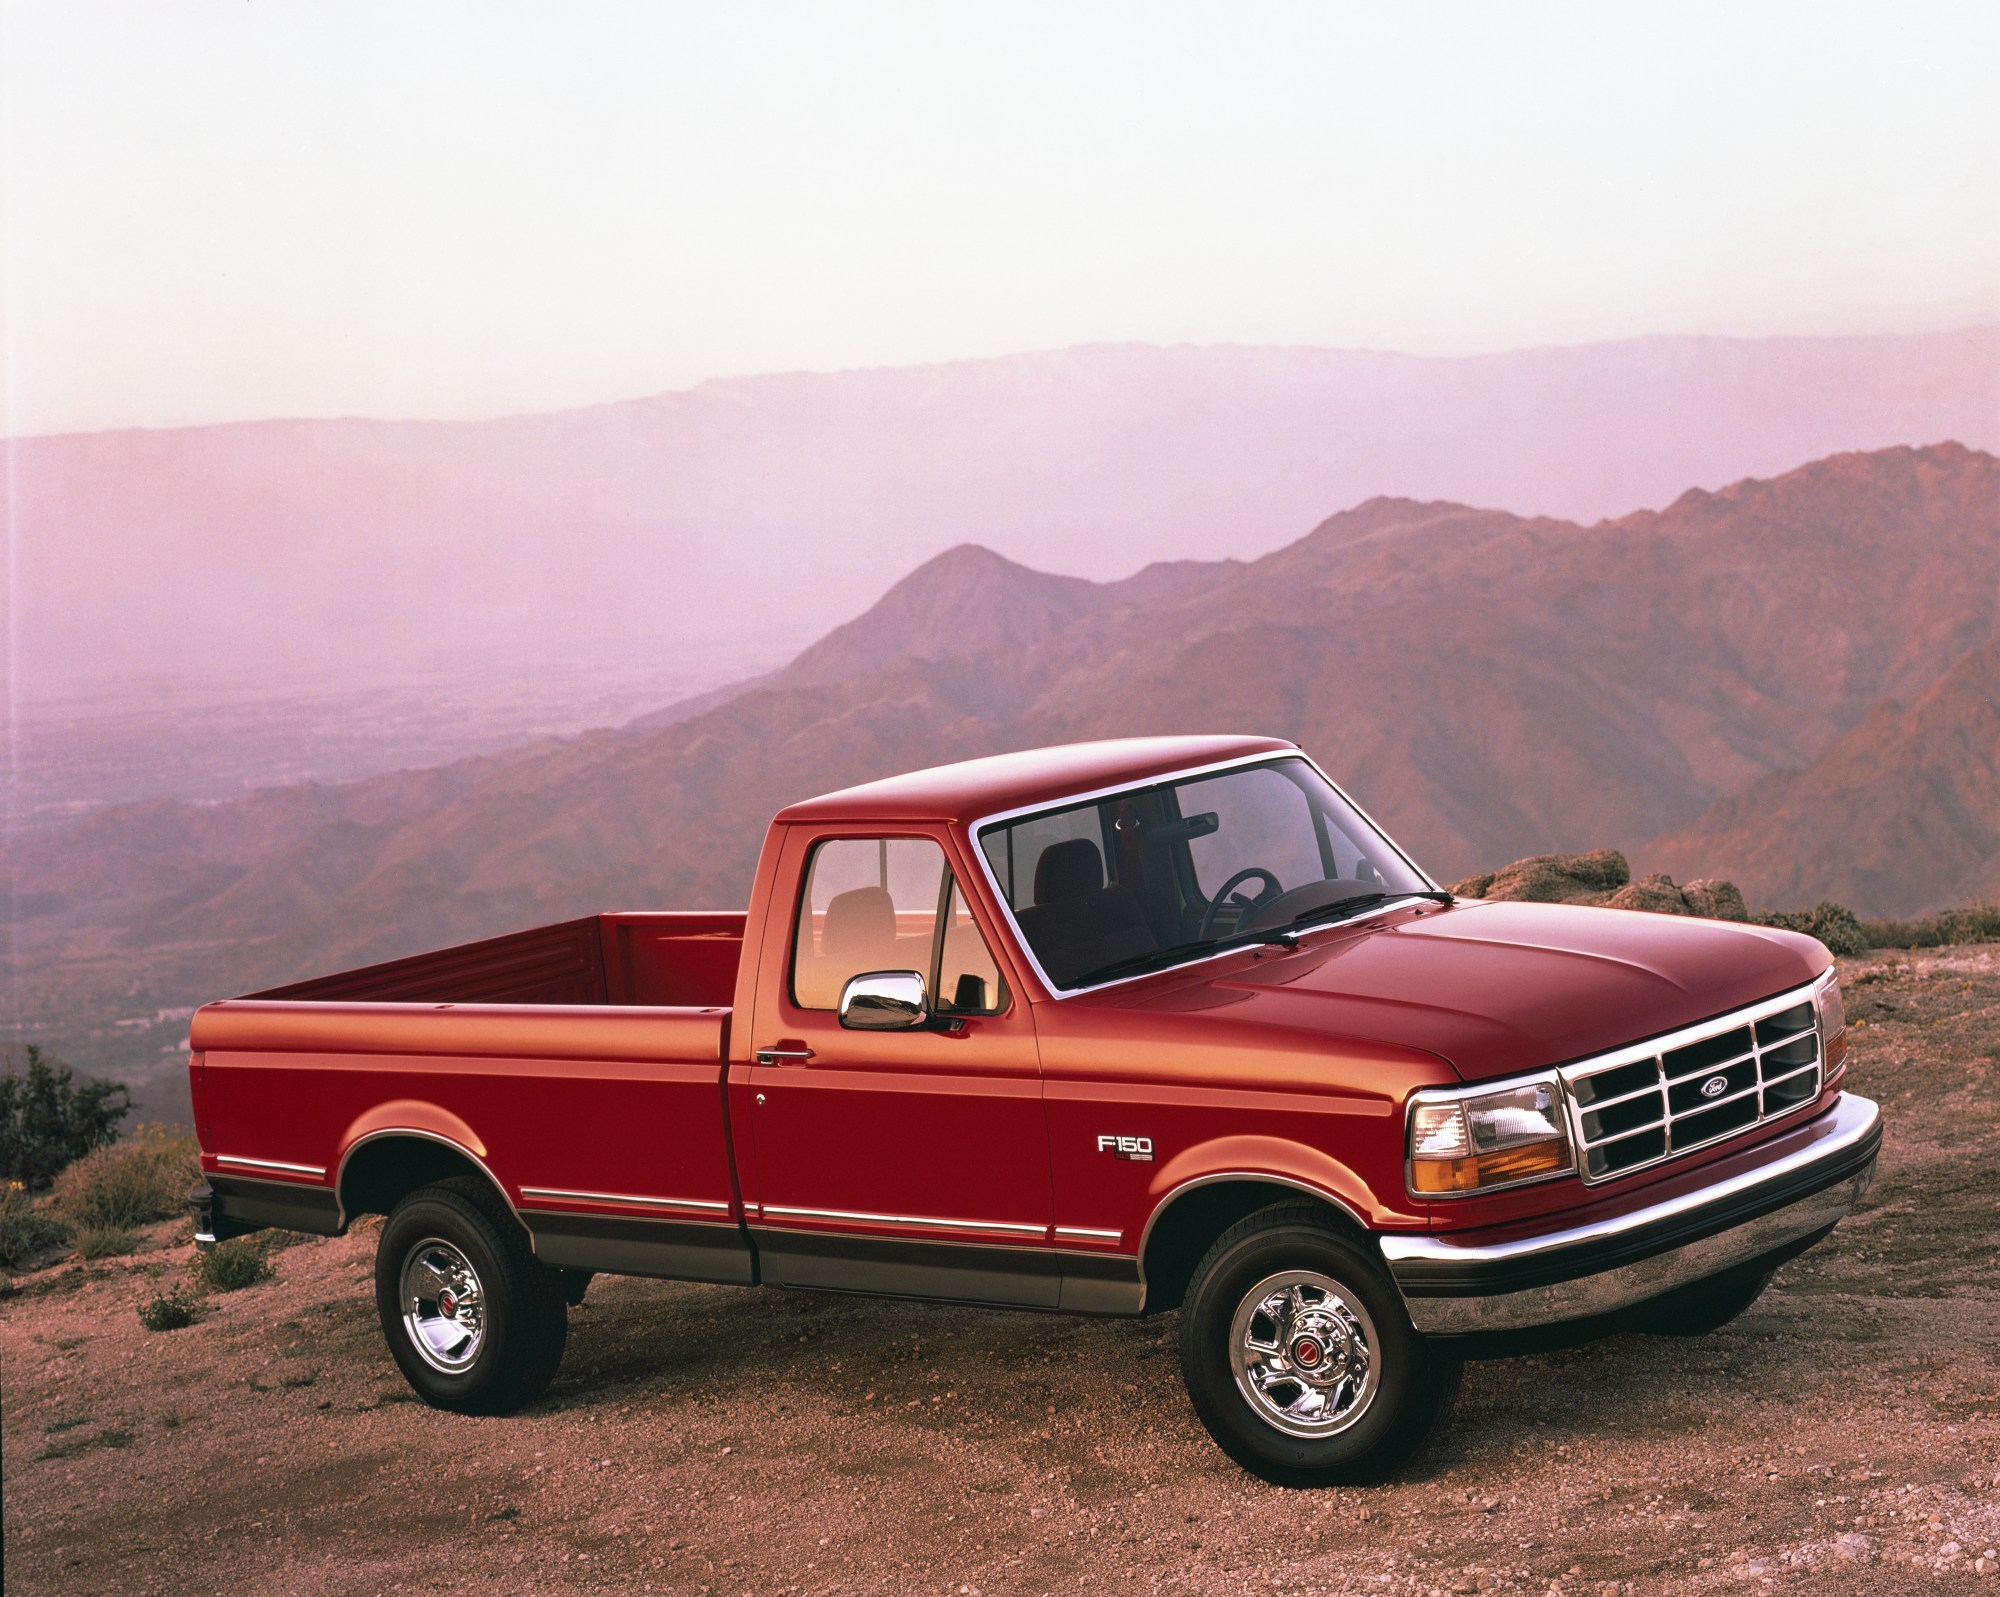 hight resolution of 1992 ford f 150 oct 4 2012